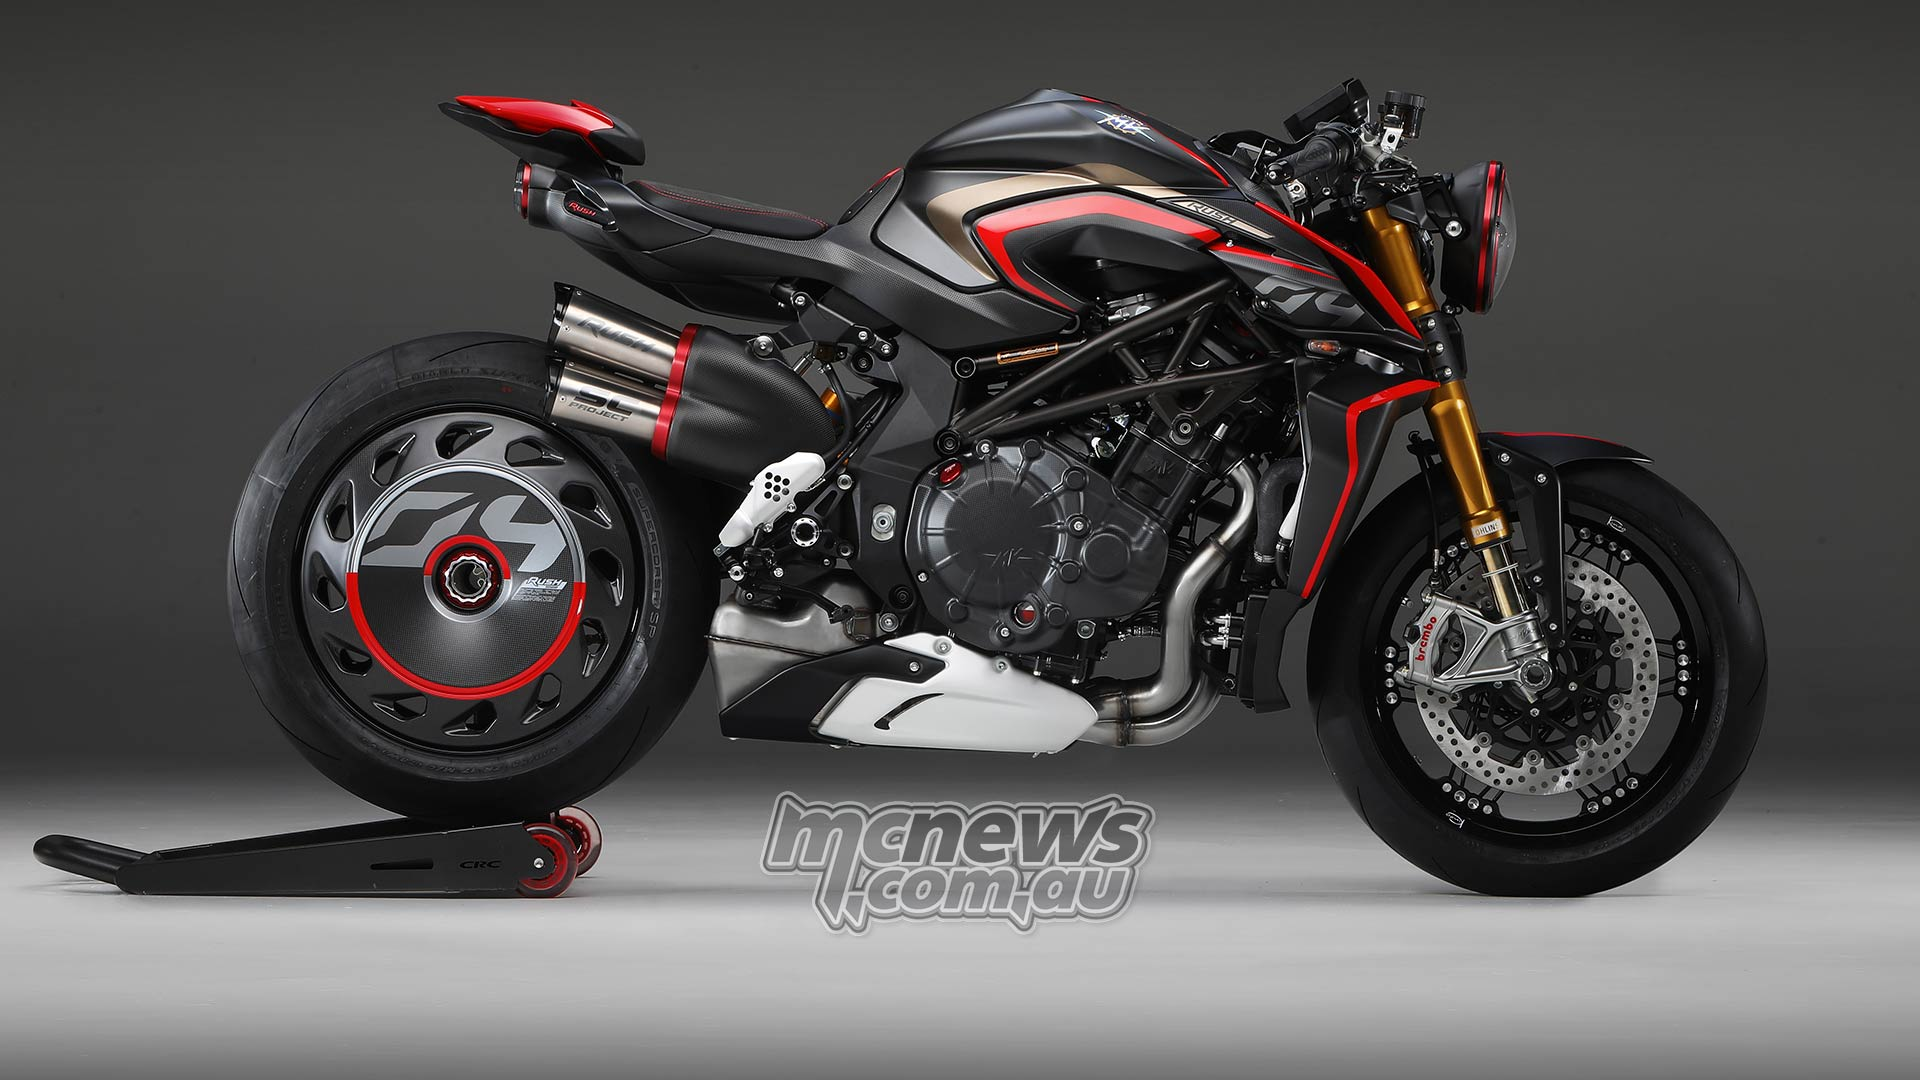 https://www.mcnews.com.au/wp-content/uploads/2019/11/MV-Agusta-Rush-1000-1.jpg